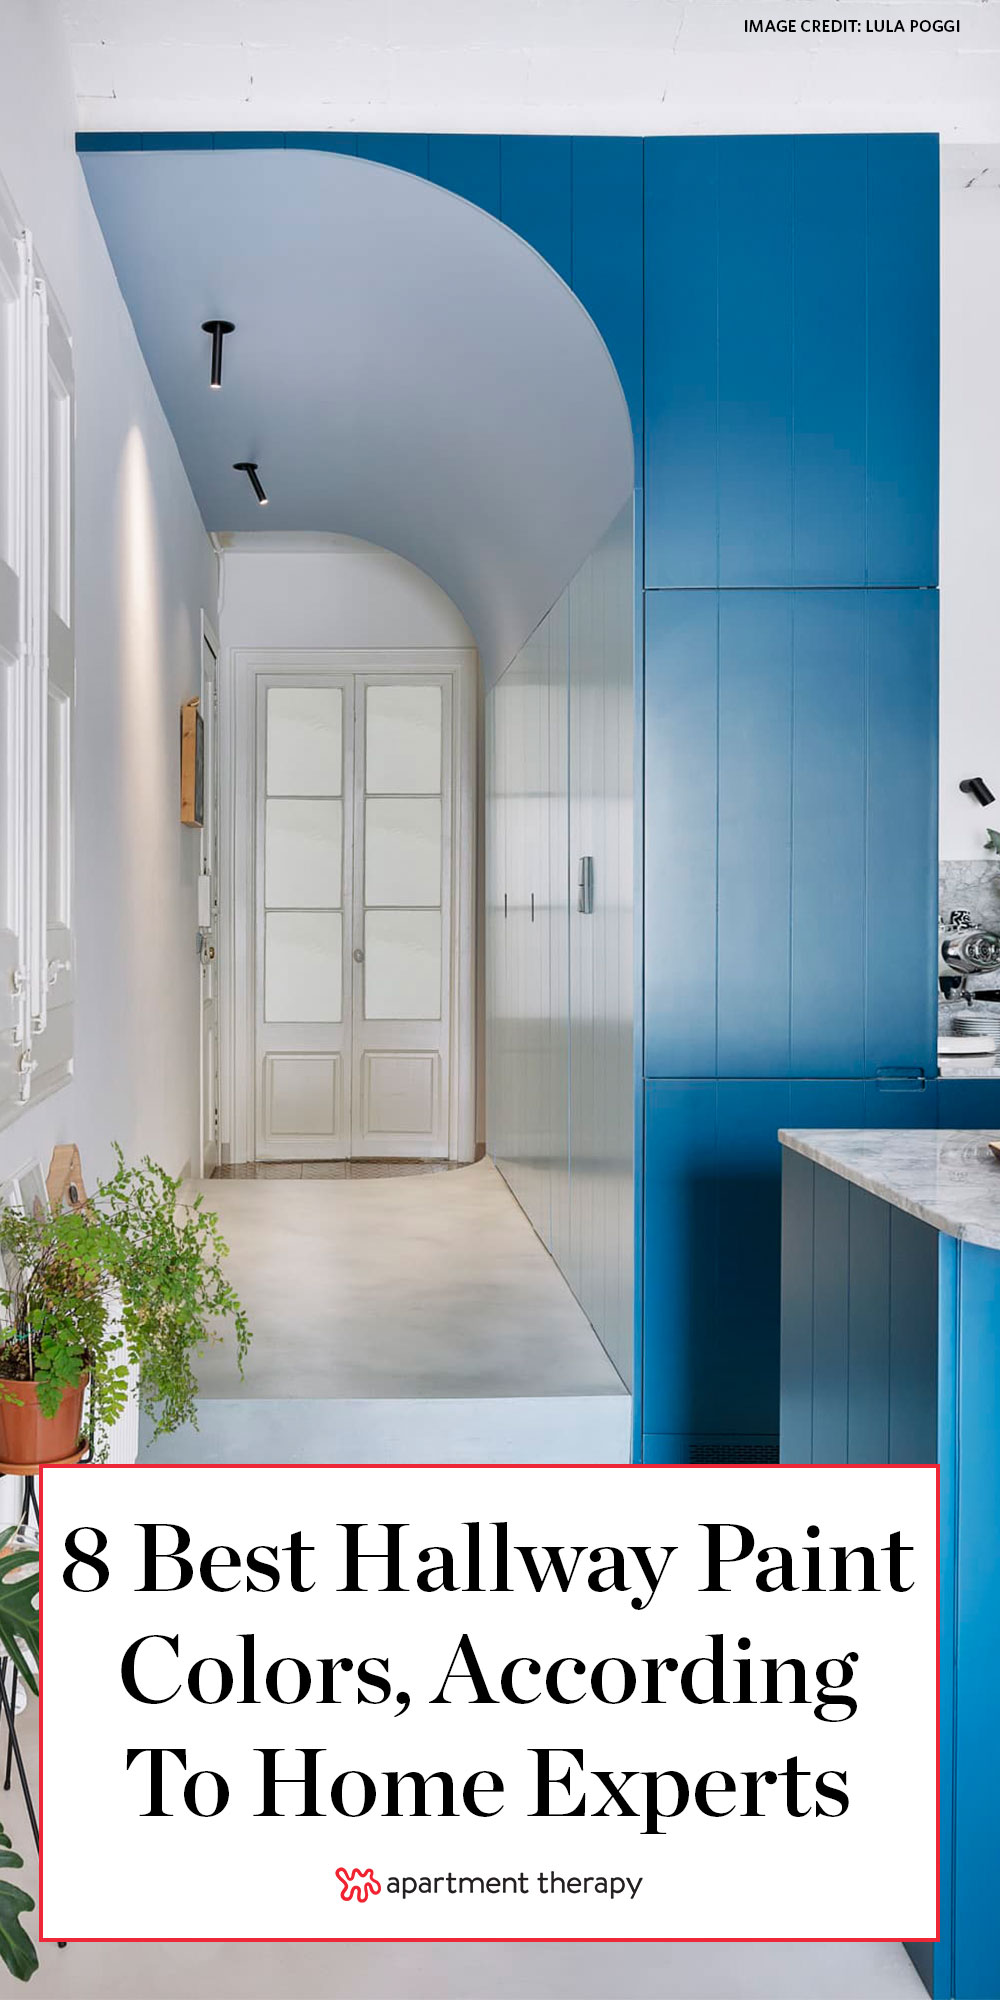 The Best Hallway Paint Colors According To Home Experts Apartment Therapy